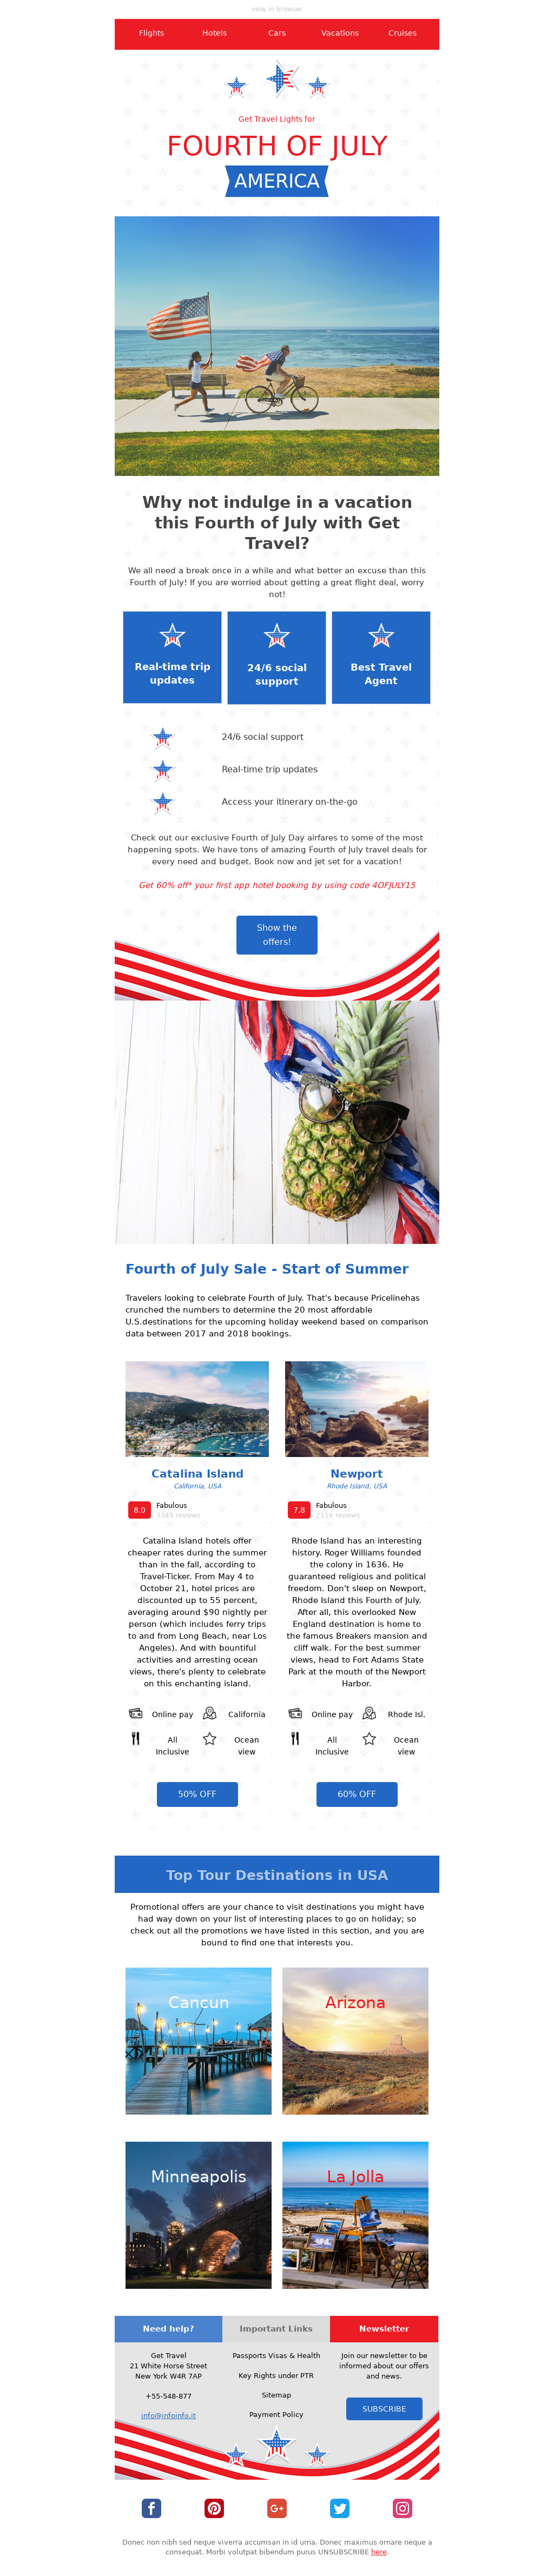 4th of July Email Template to Sell More Travels on Independence Day